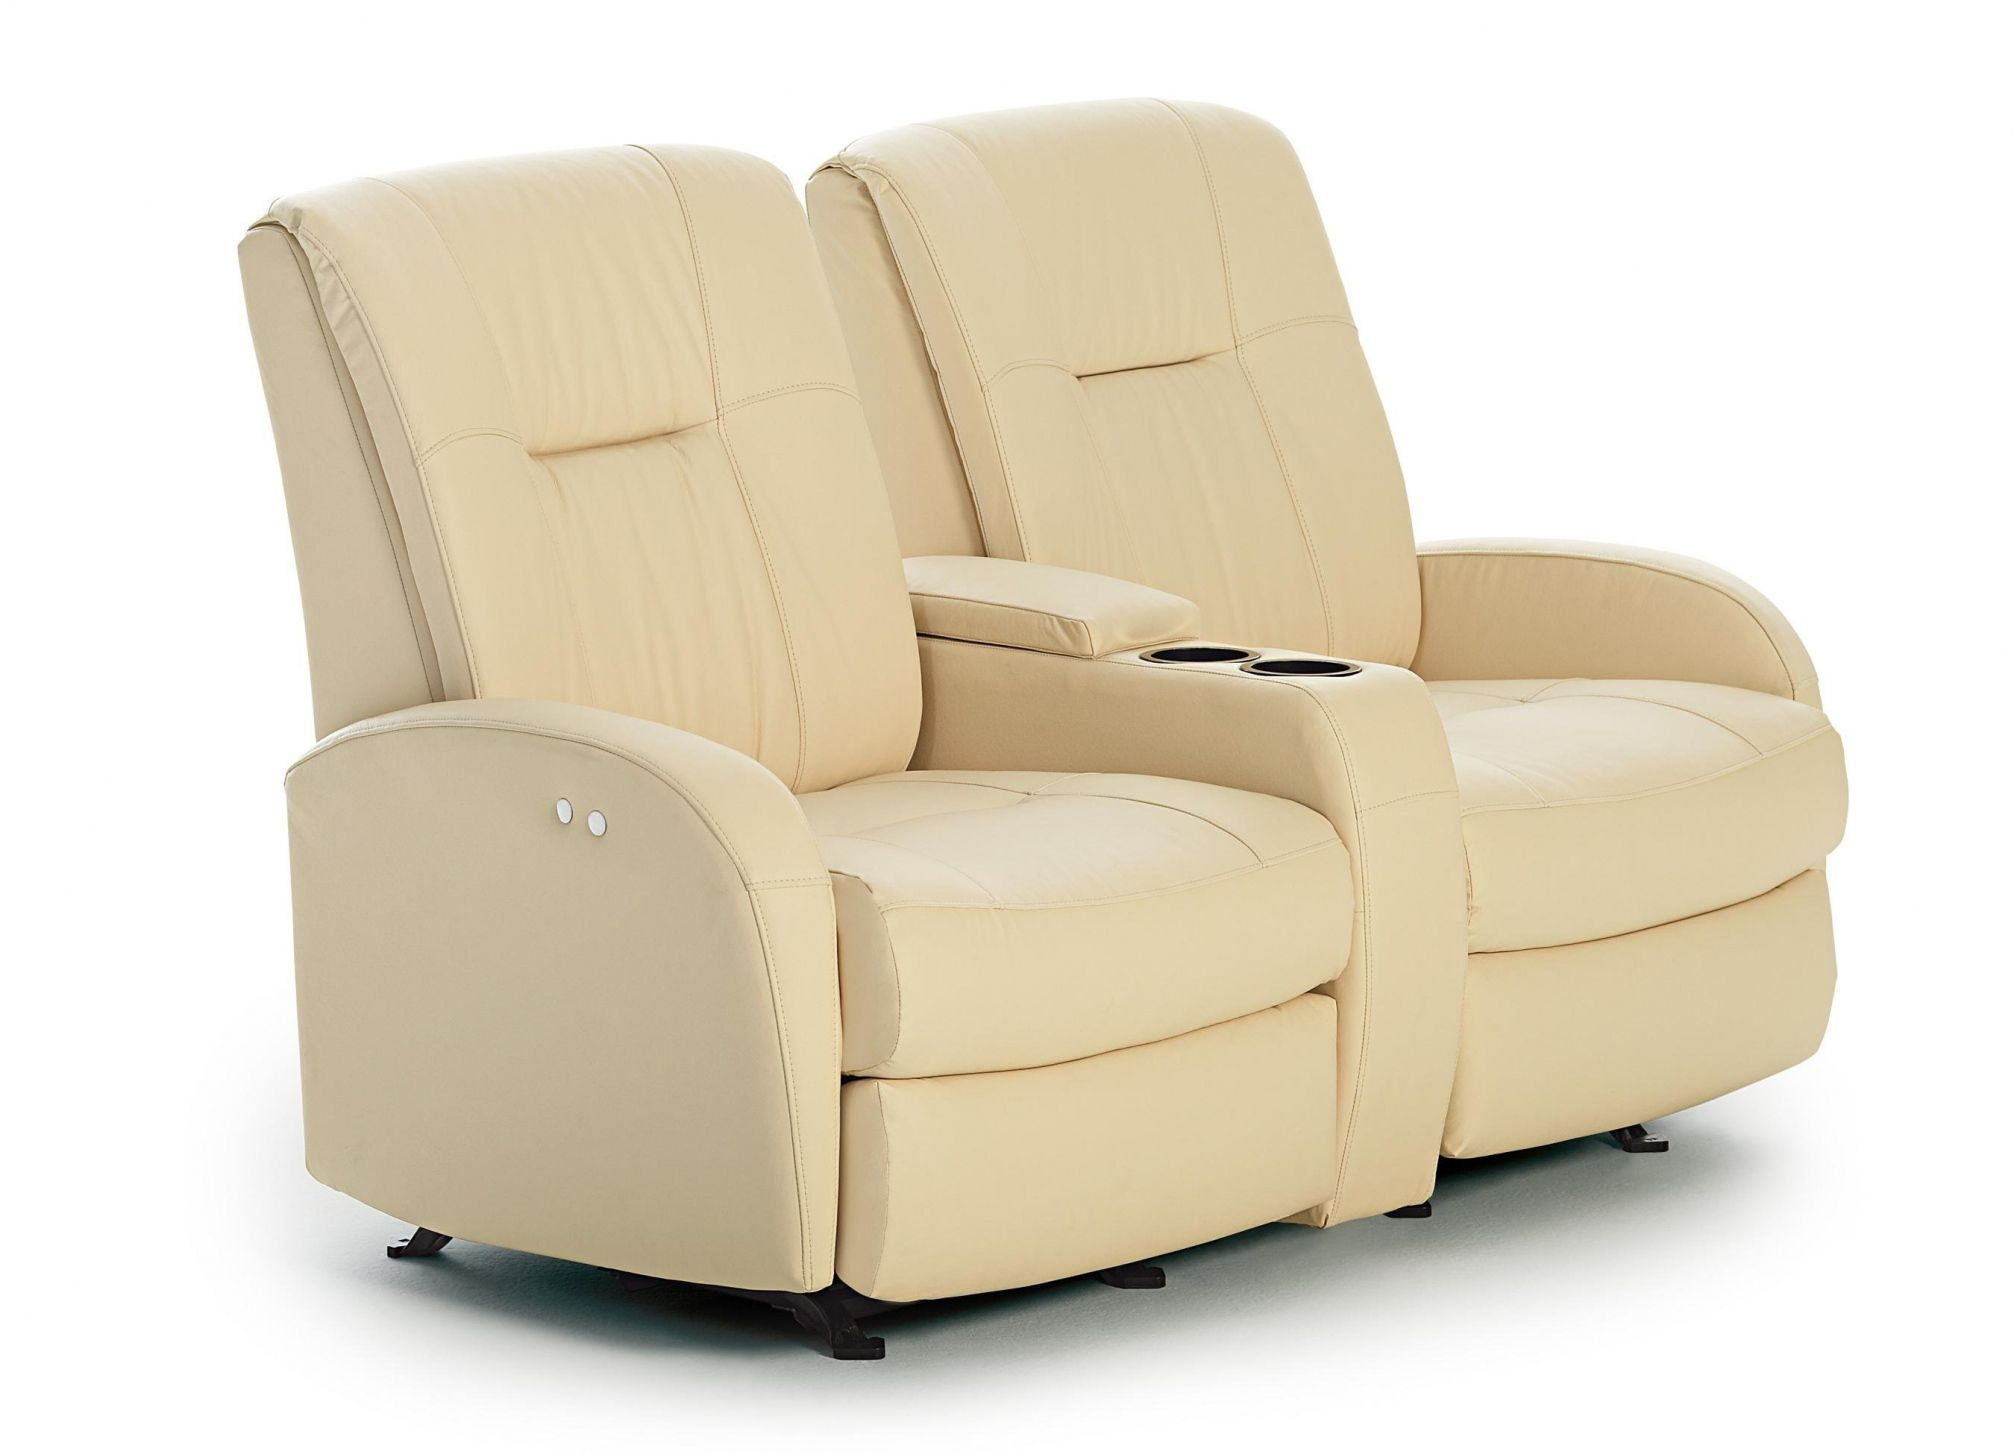 100 Leather Recliners For Small Spaces Top Rated Interior Paint Check More At Http Www Freshtalknetwork Com Leather Recliners For Small Spaces Poltrona